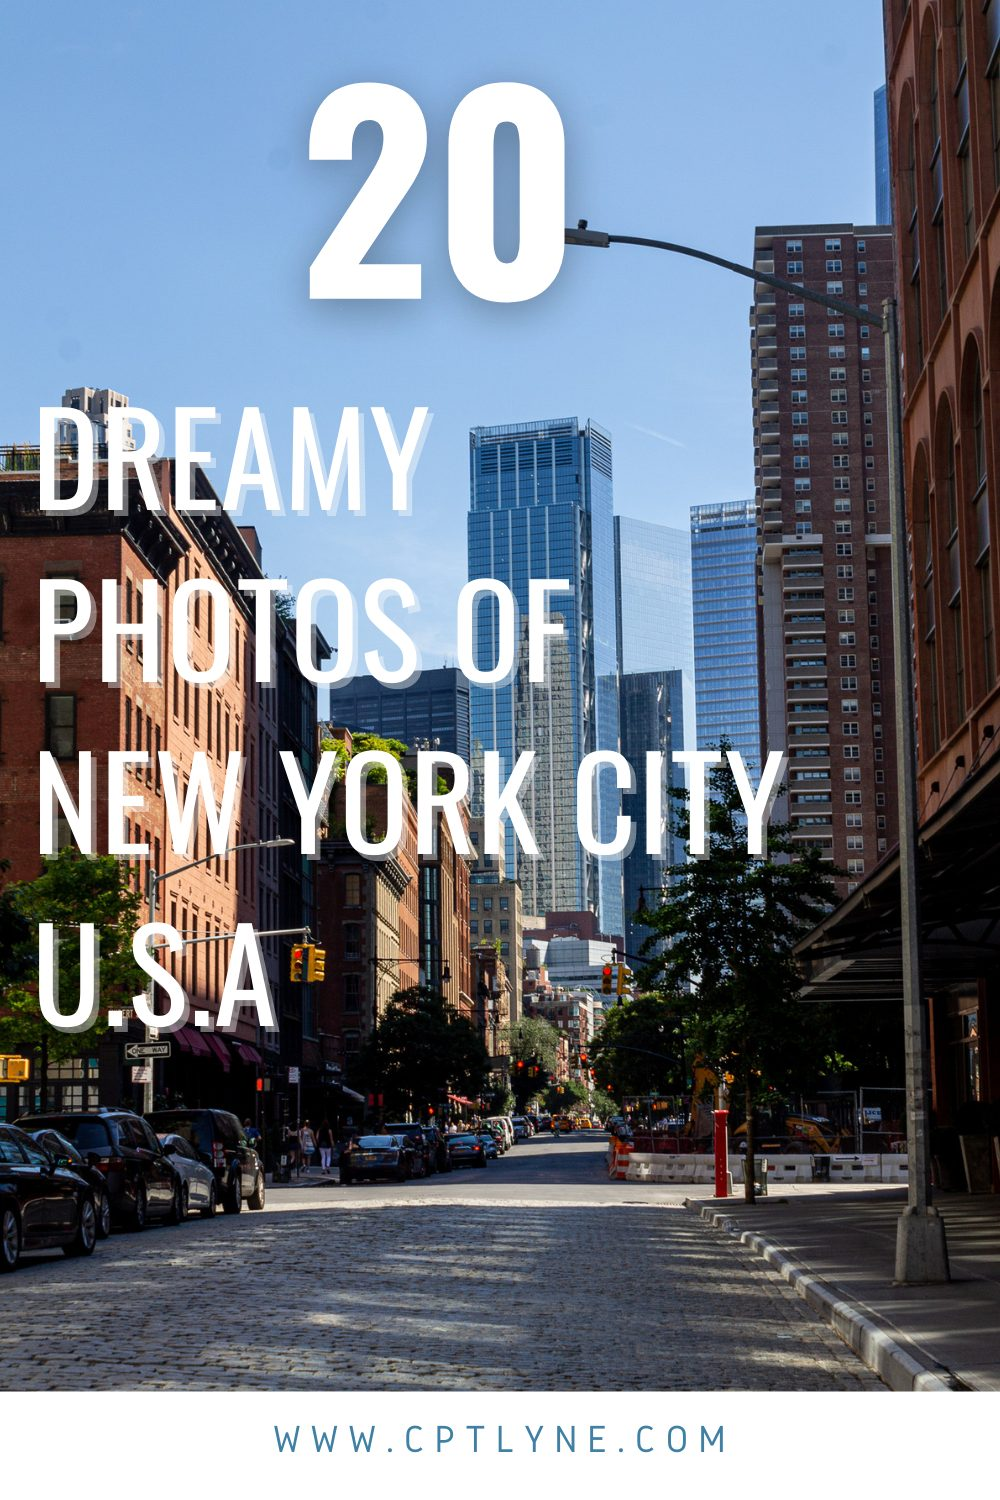 20 photos of NYC that will make you want to visit the big apple for your next trip! | New York Travel Tips | NYC Things to do | NYC Travel | New York City Travel | NYC Travel Guide | NYC Food Guide | NYC Photography |